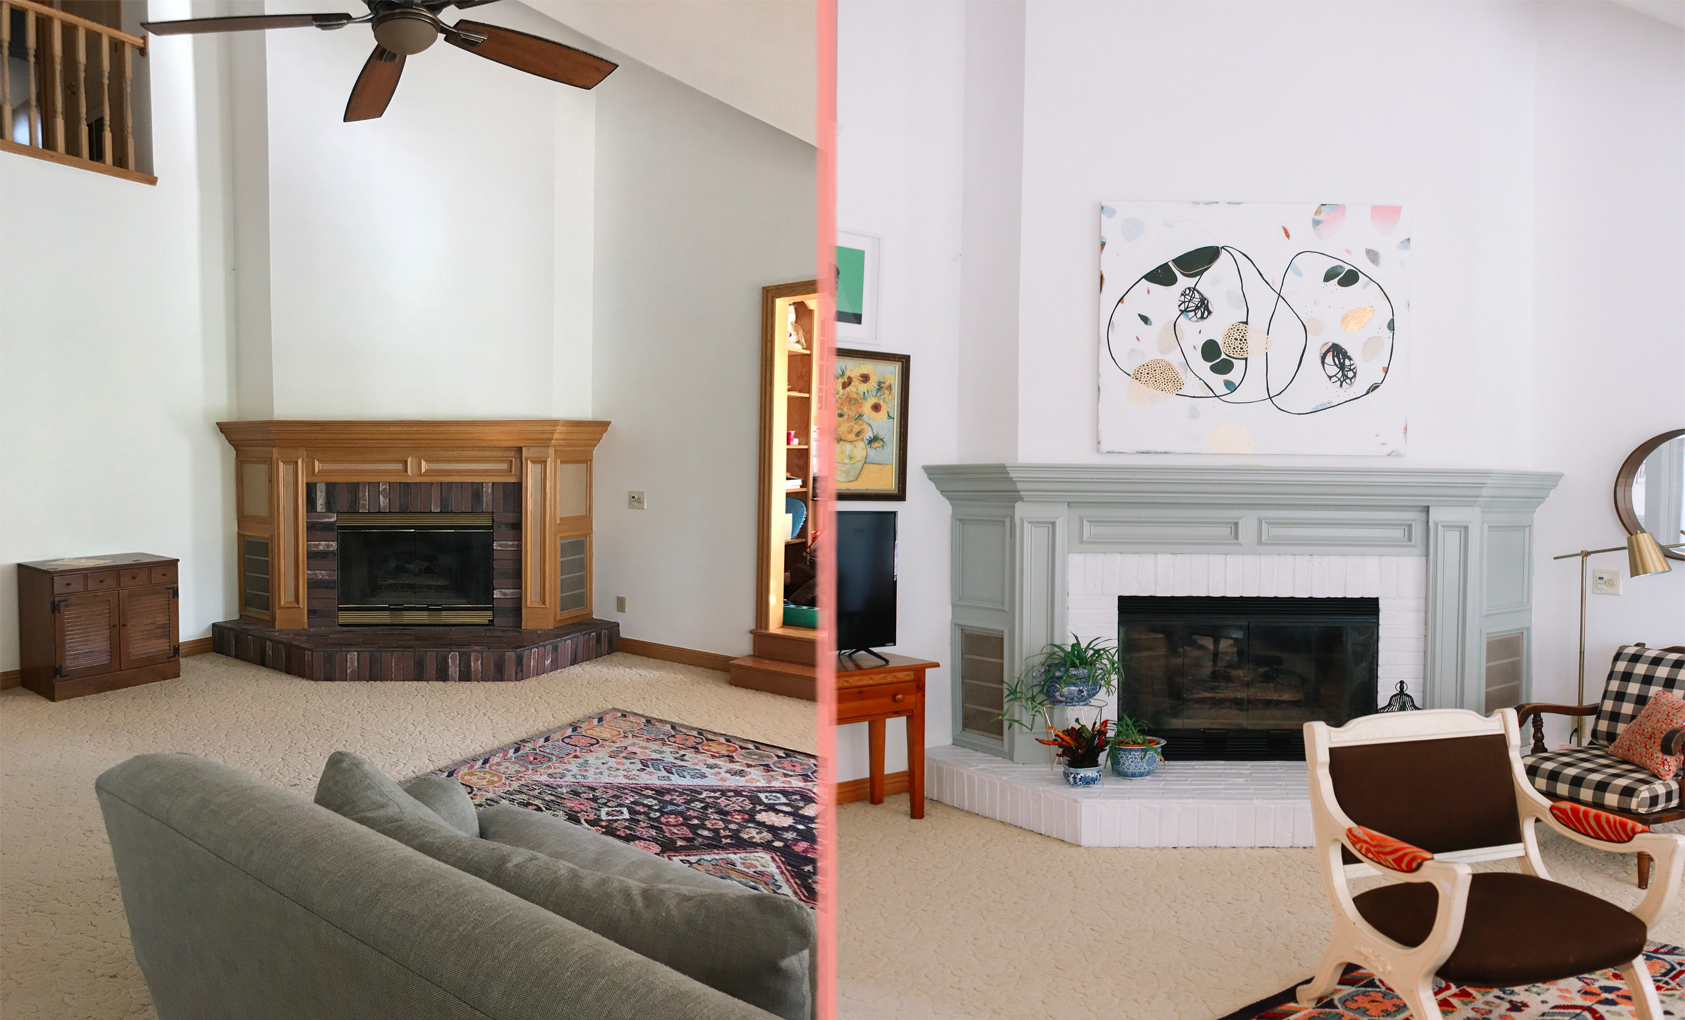 Before & After: A 1990s Suburban Home Gets a Colorful Makeover ... on home painting, home front, home blueprints, home building, home layout, home builders, home ideas, home renovation, home tiny house, home exteriors, home decor, home wallpaper, home plan, home row, home drawing, home furniture, home color schemes, home style, home symbol, home interior,